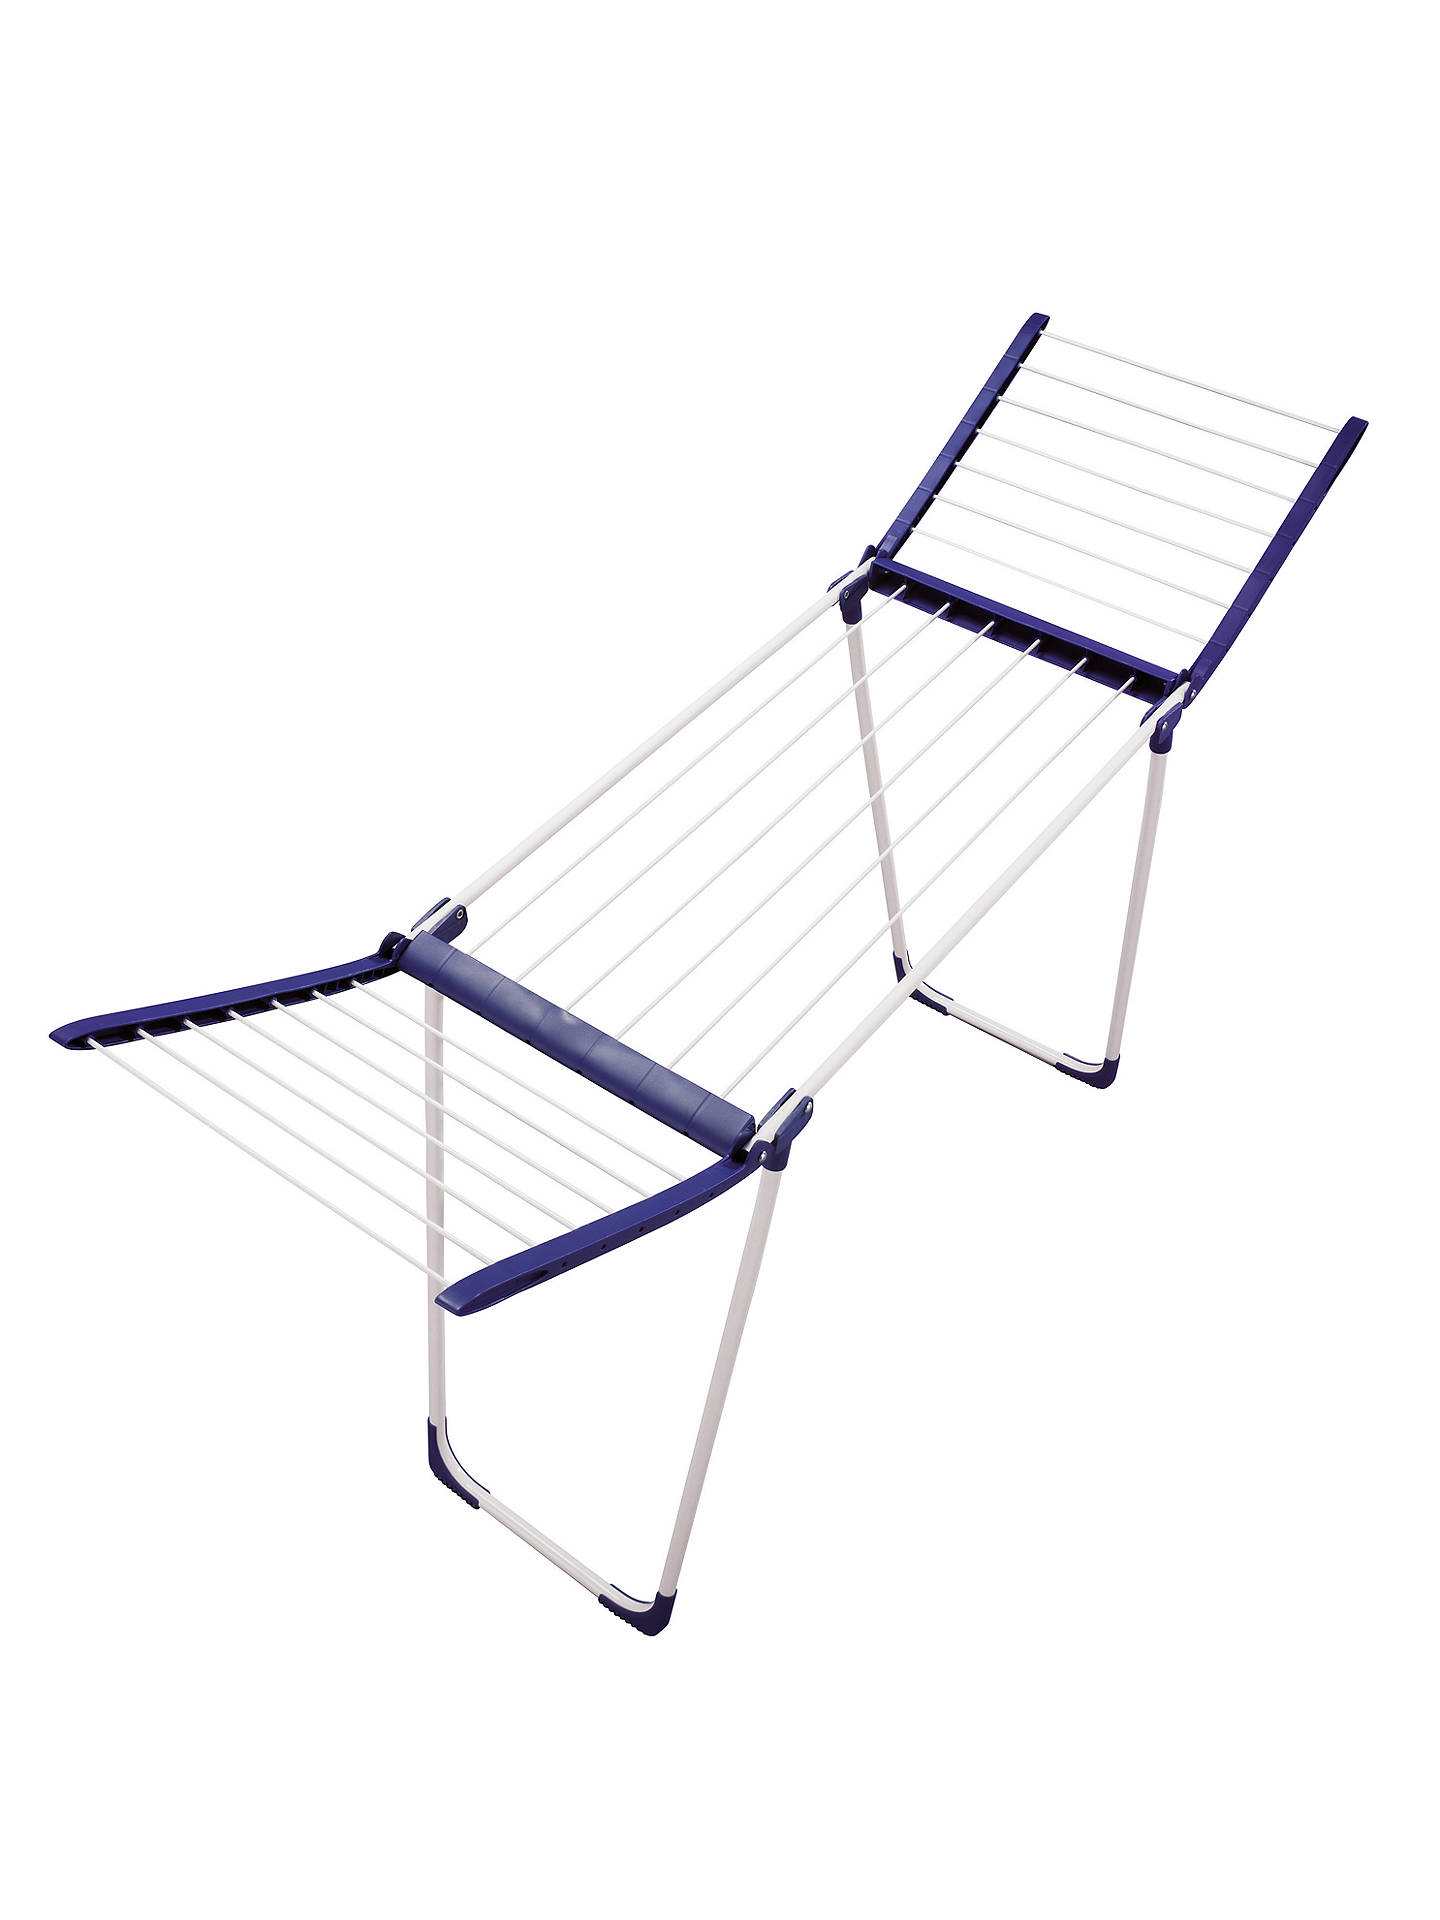 BuyLeifheit Pegasus 120 Bath Standing Clothes Airer Online at johnlewis.com